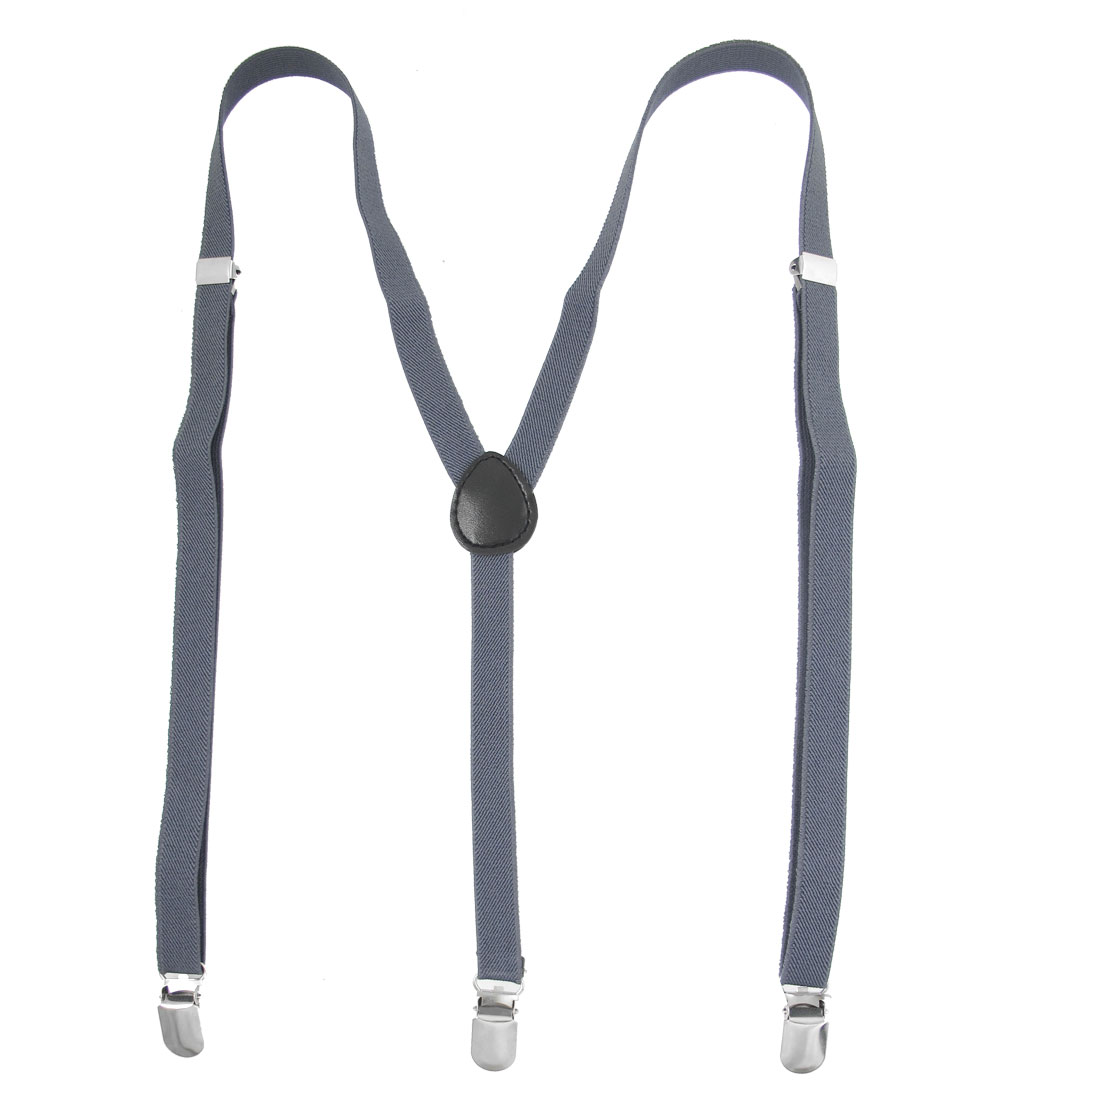 Unisex Adjustable Clasp Y Back Stretchy Suspenders Steel Blue